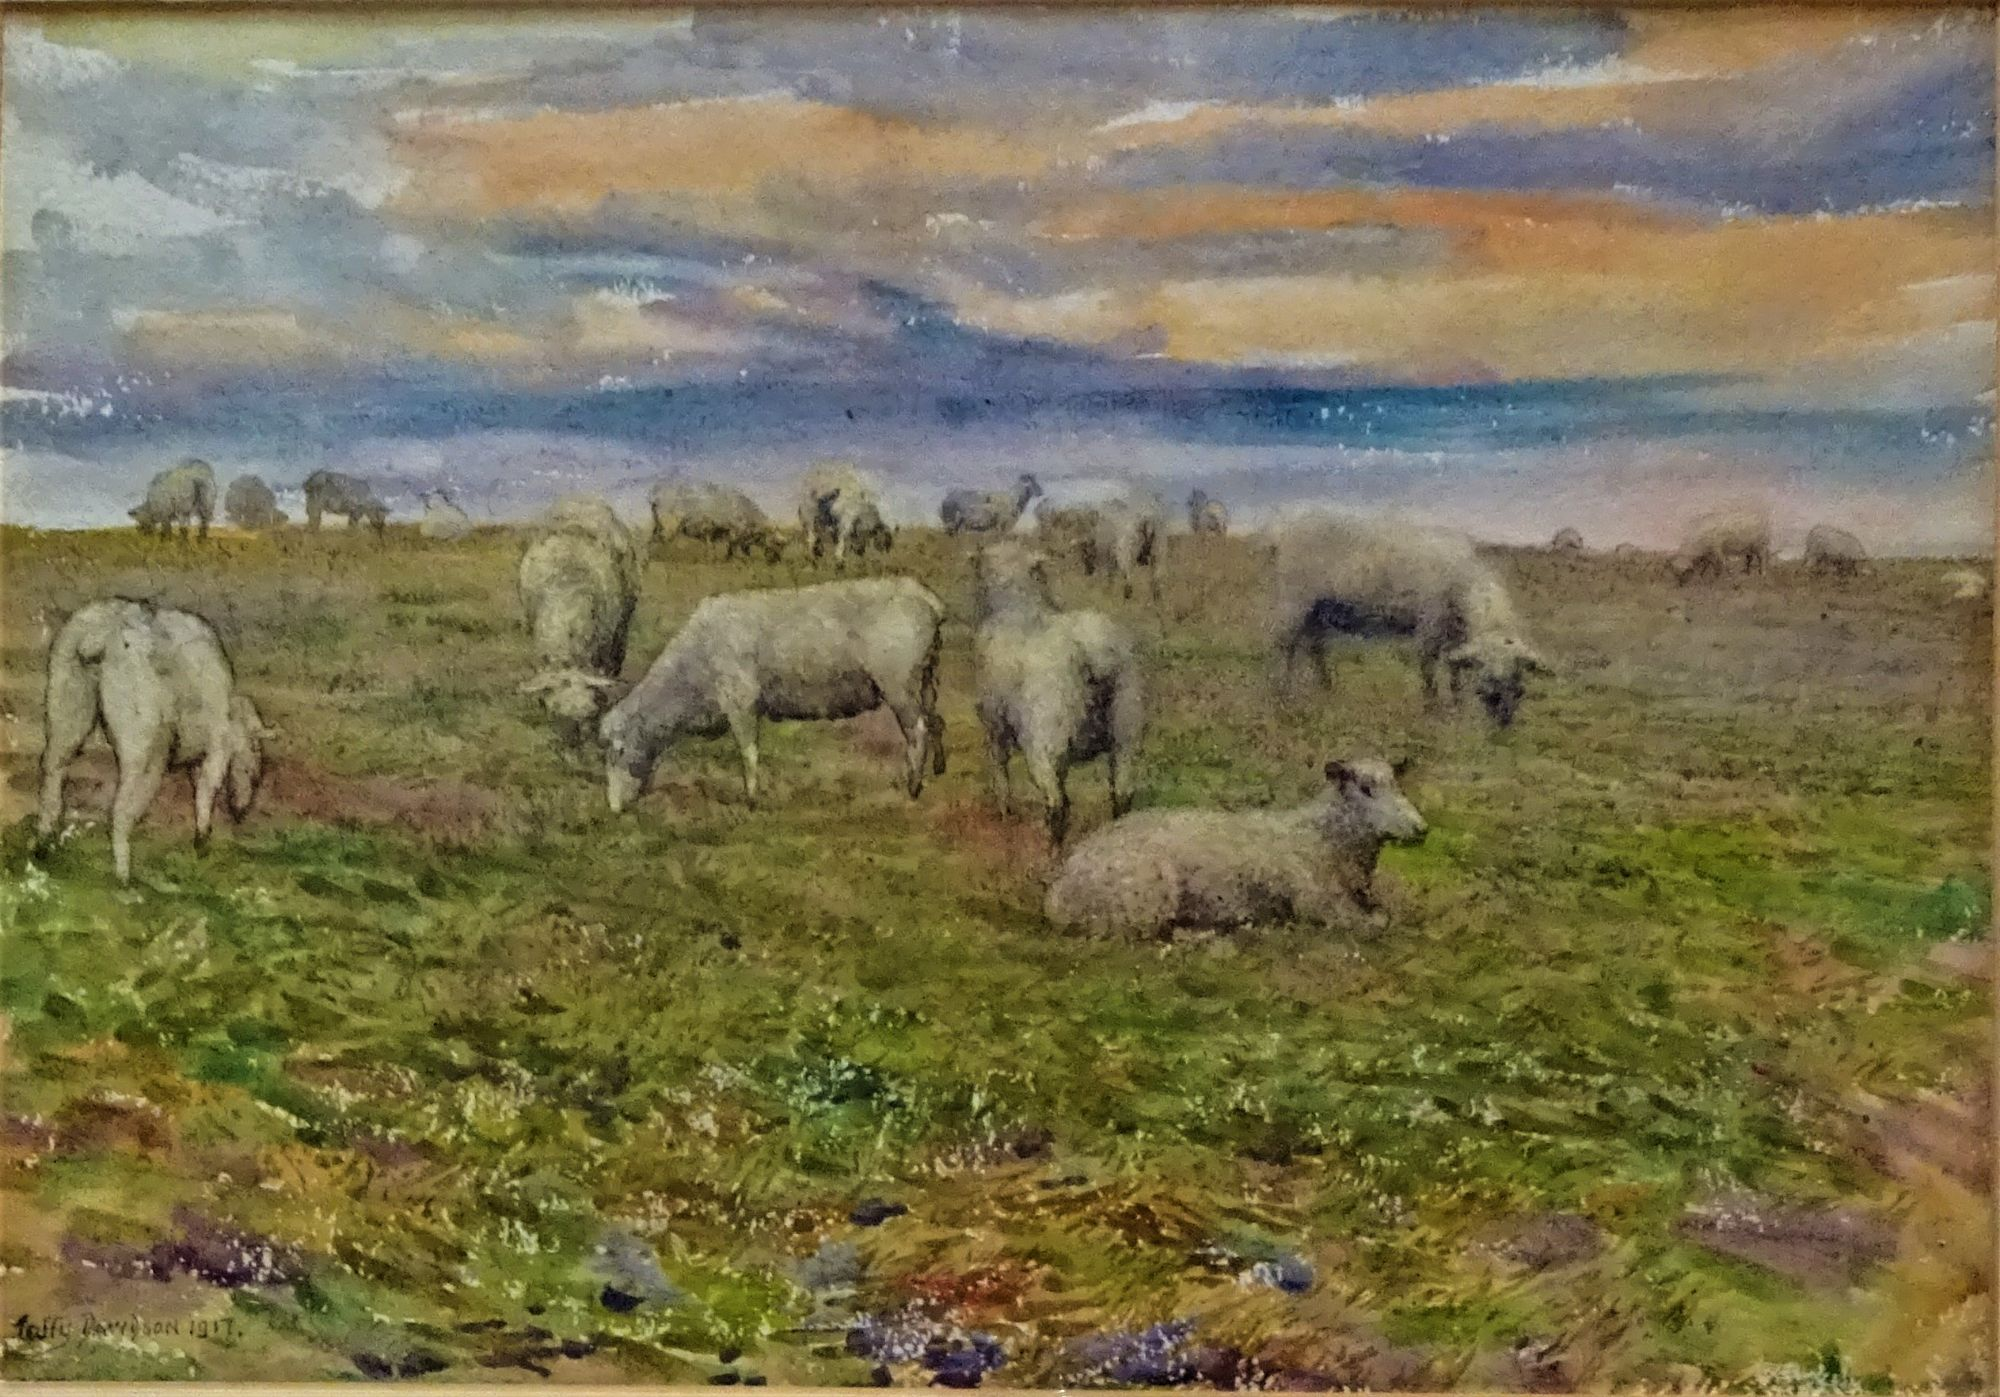 Grazing Sheep, landscape,  watercolour on paper, signed Taffy Davidson 1917. Framed.